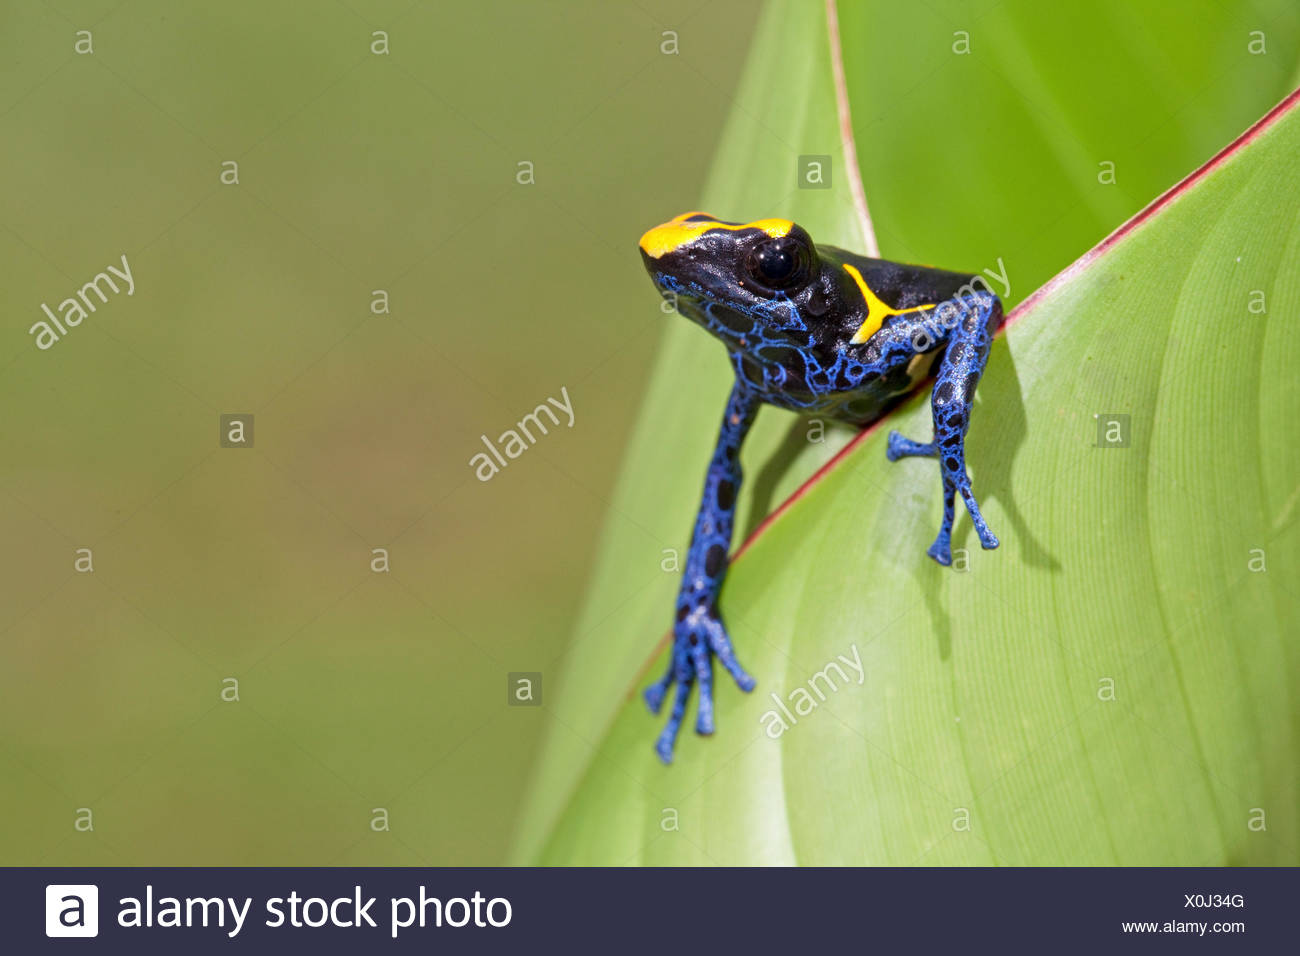 photo of a dyeing dart frog crawling out of a green leaf - Stock Image